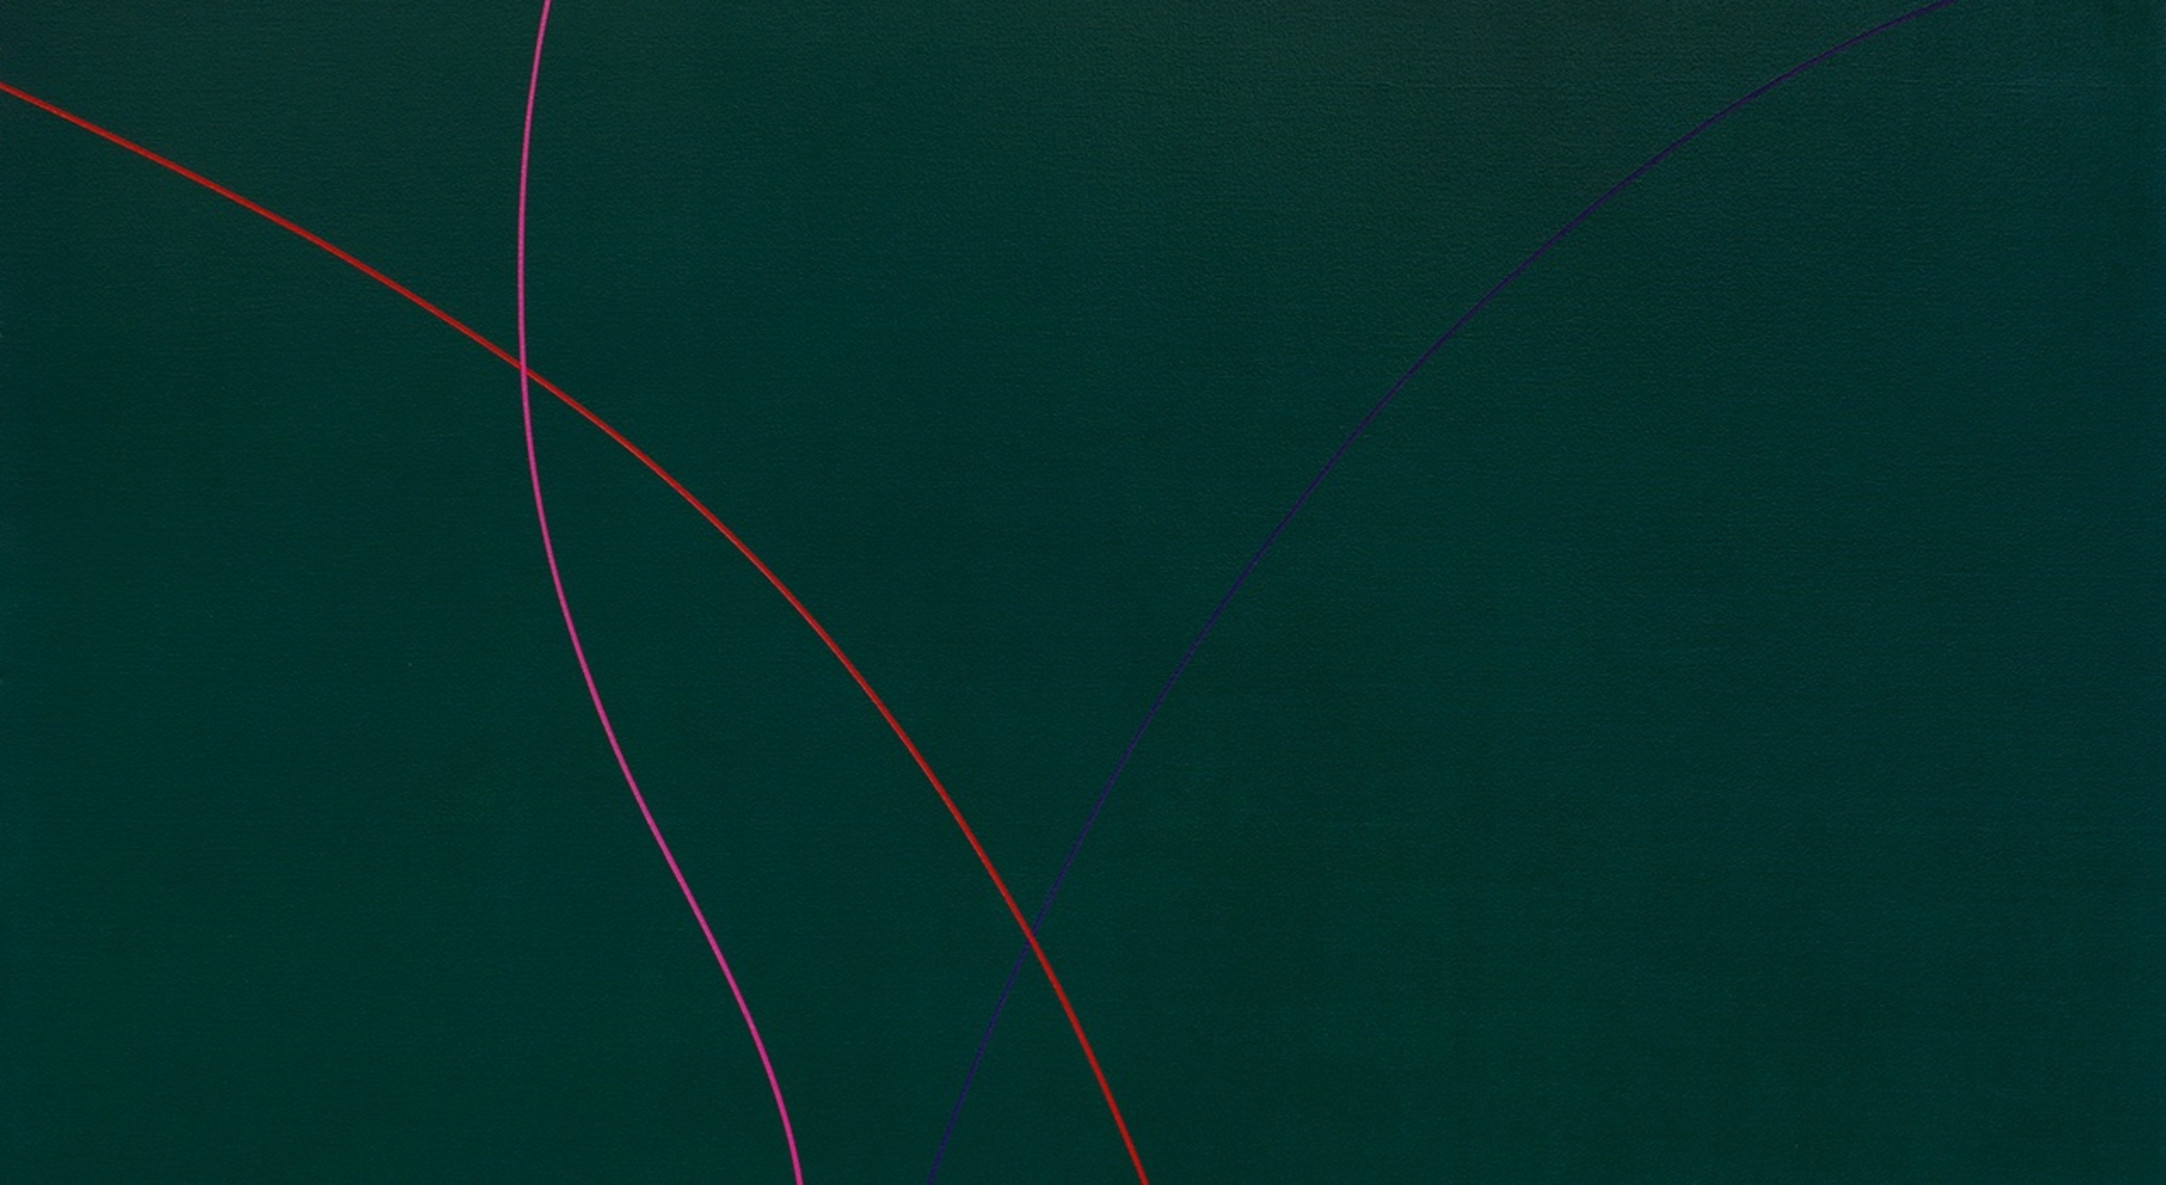 Virginia Jaramillo, Untitled, 1971 (detail)